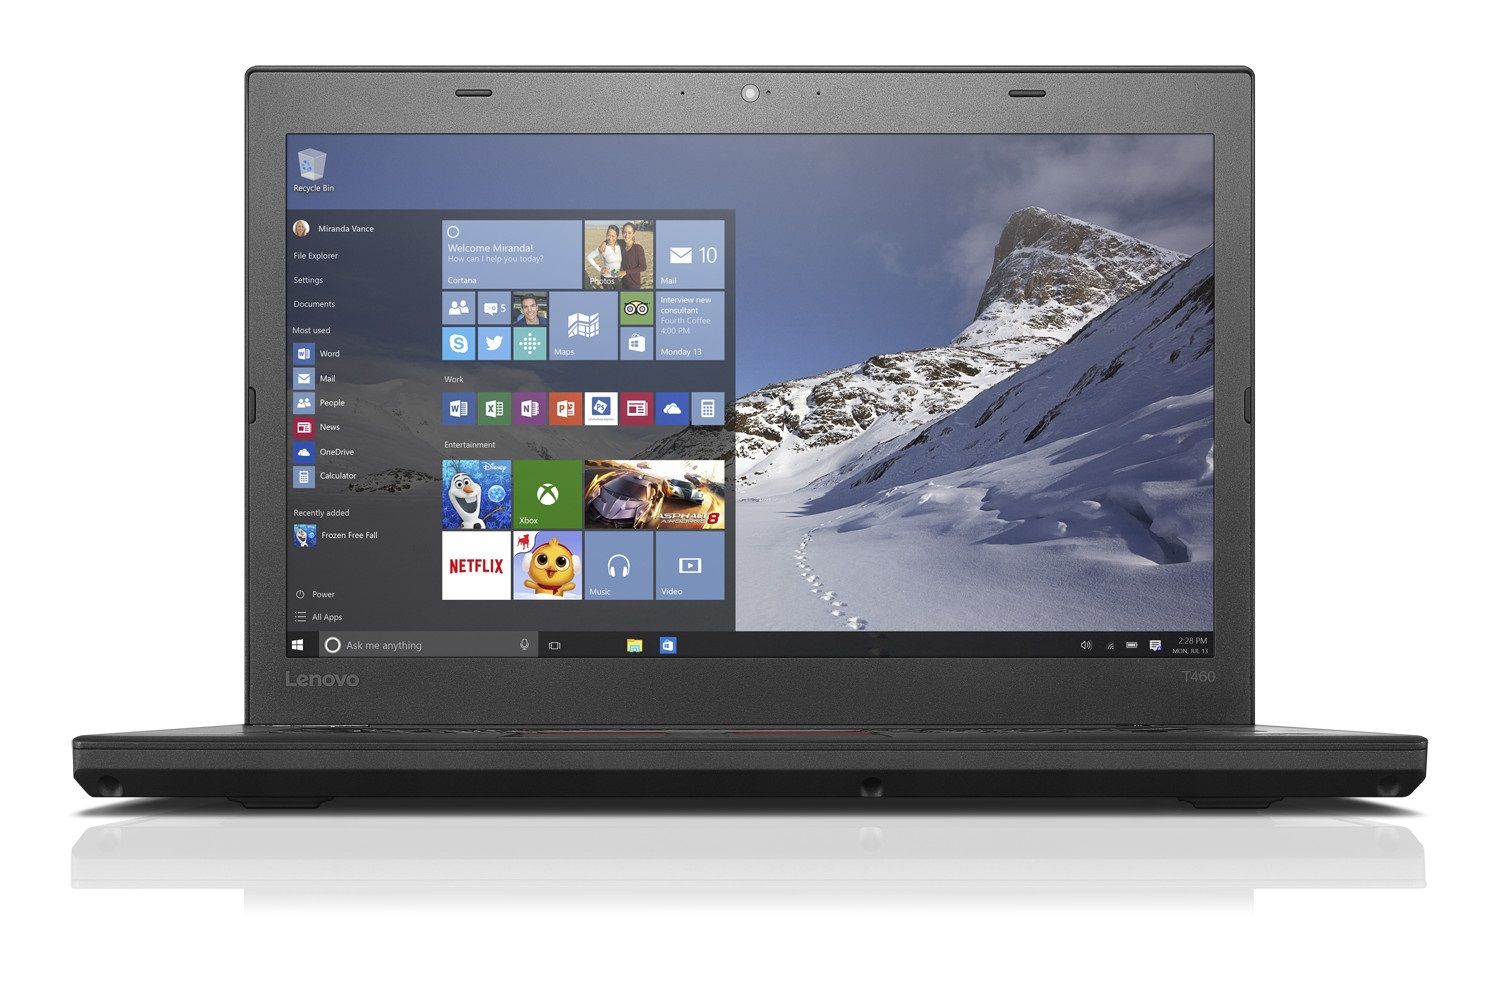 "Lenovo ThinkPad T460 i7-6600U/32GB/512GB SSD/HD Graphics 520/14""FHD IPS/4G/Win10PRO/Black"